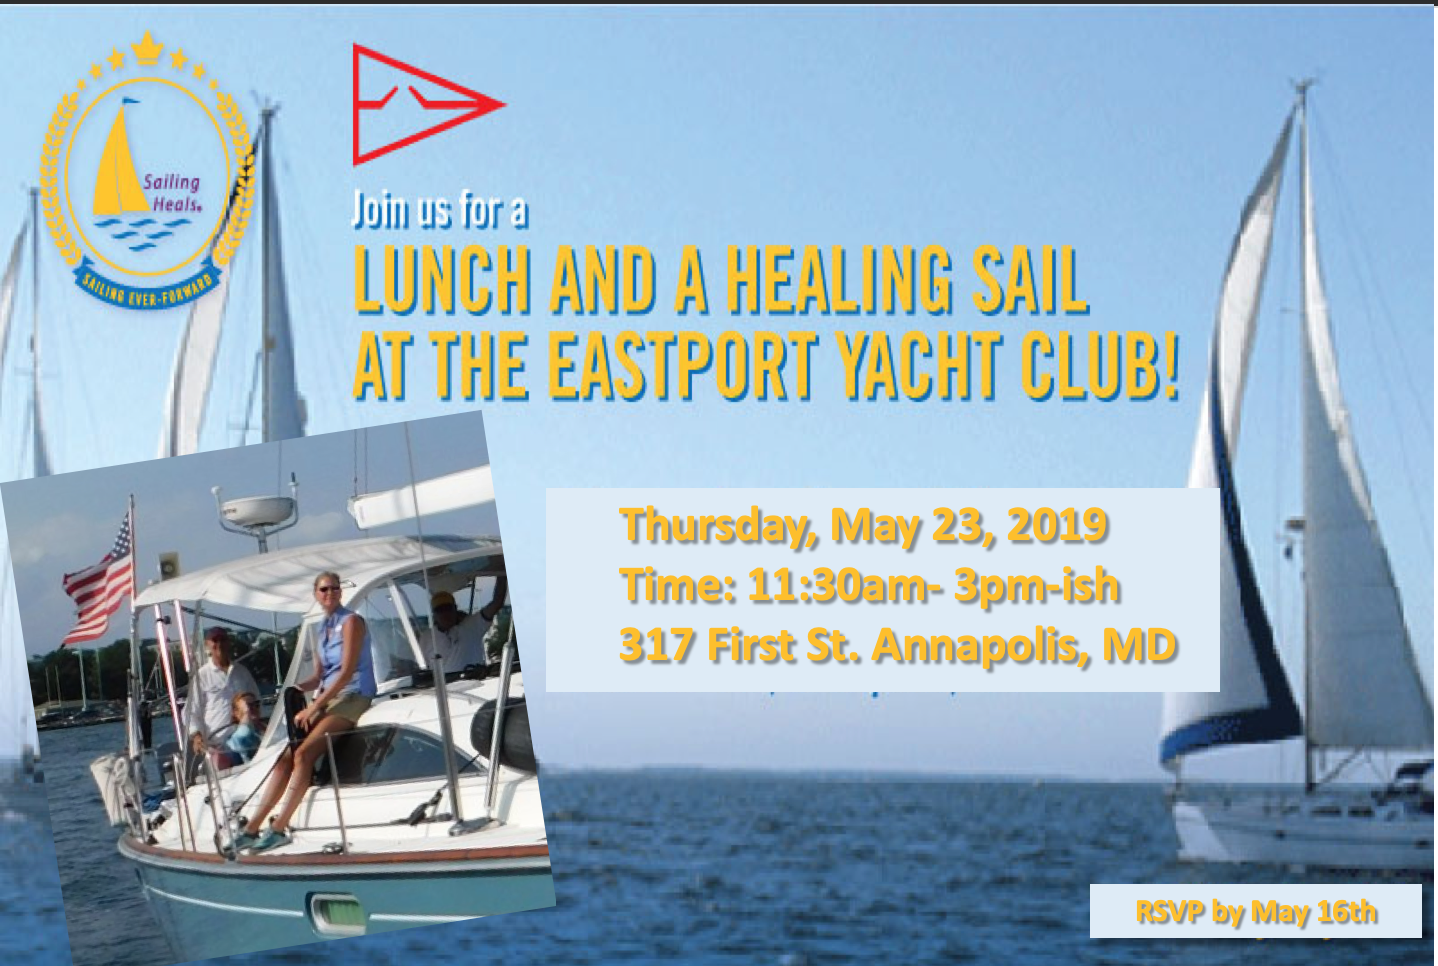 5.23.19 Eastport Yacht Club Lunch and Healing Sail!